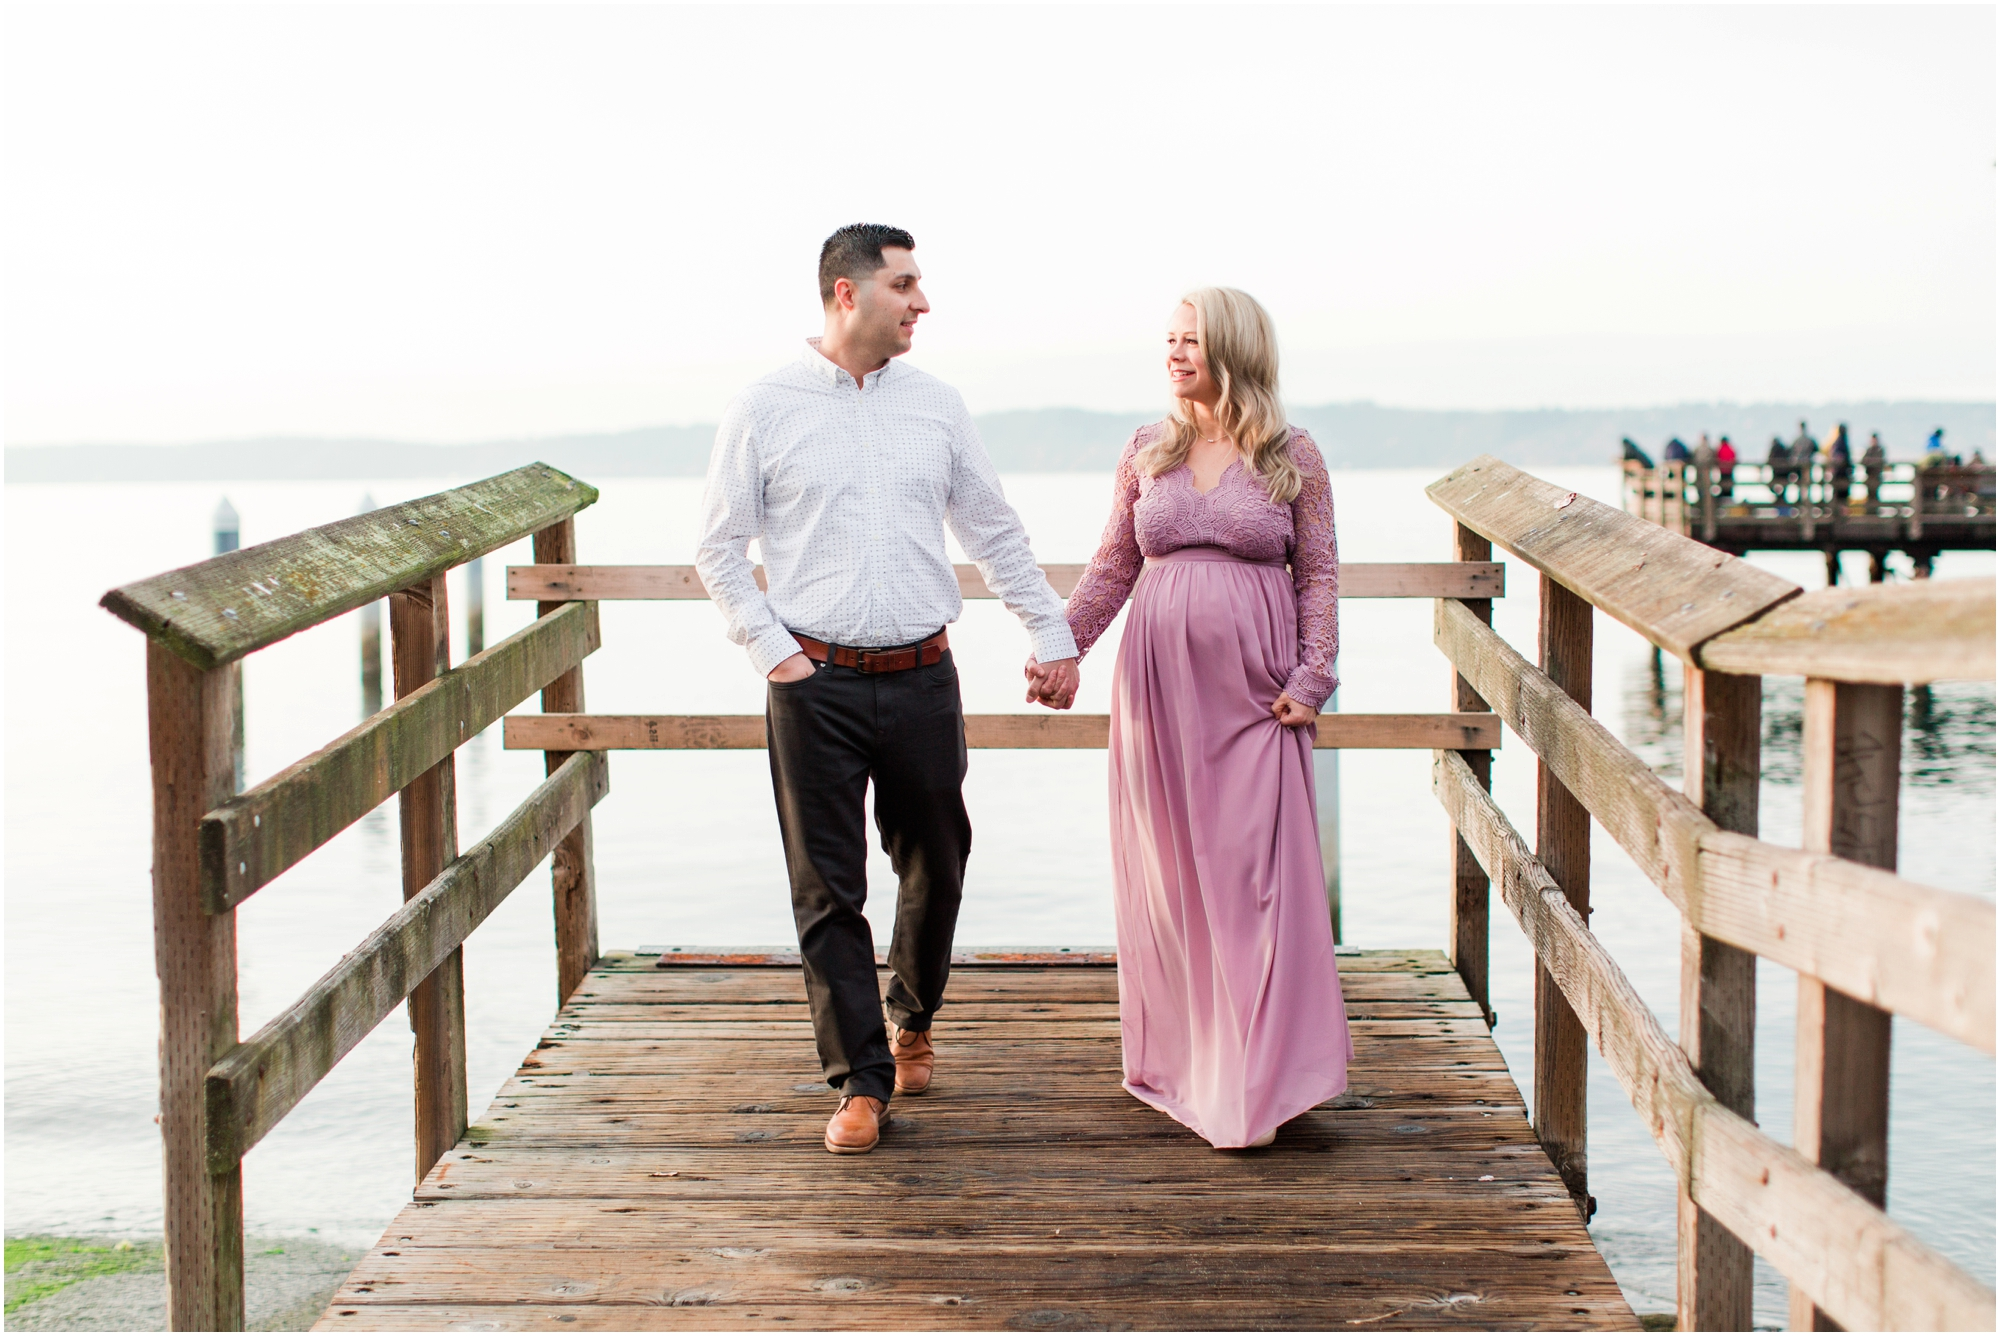 Maternity photos by Briana Calderon Photography based in the Greater Seattle & Tacoma, WA_0979.jpg